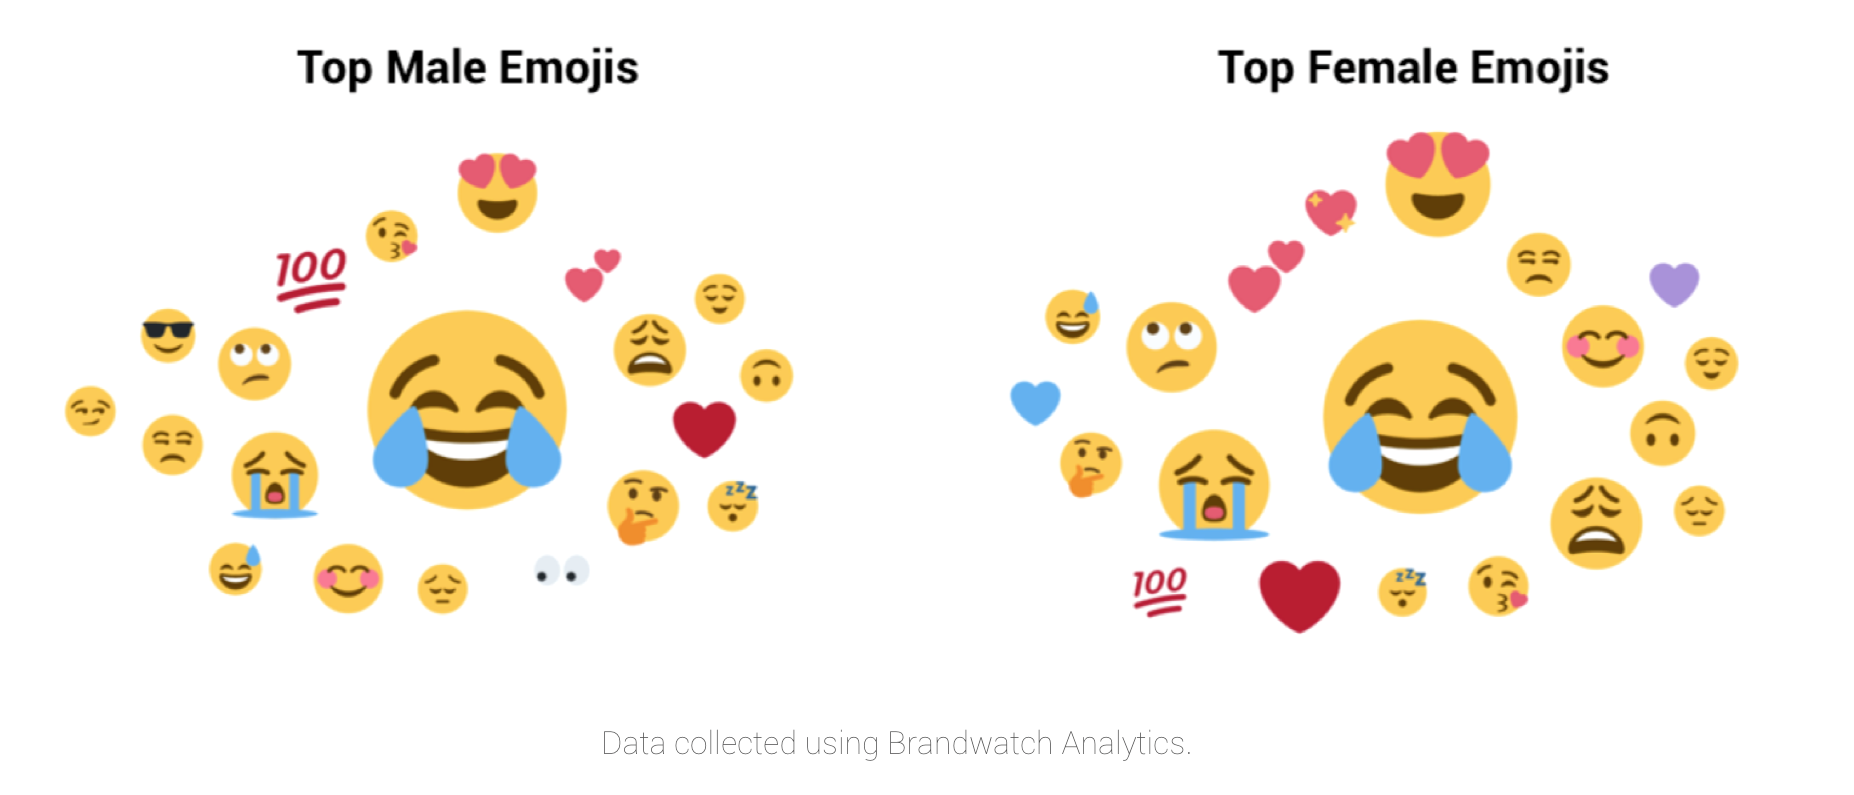 men-women-emoji-use-2015-2017